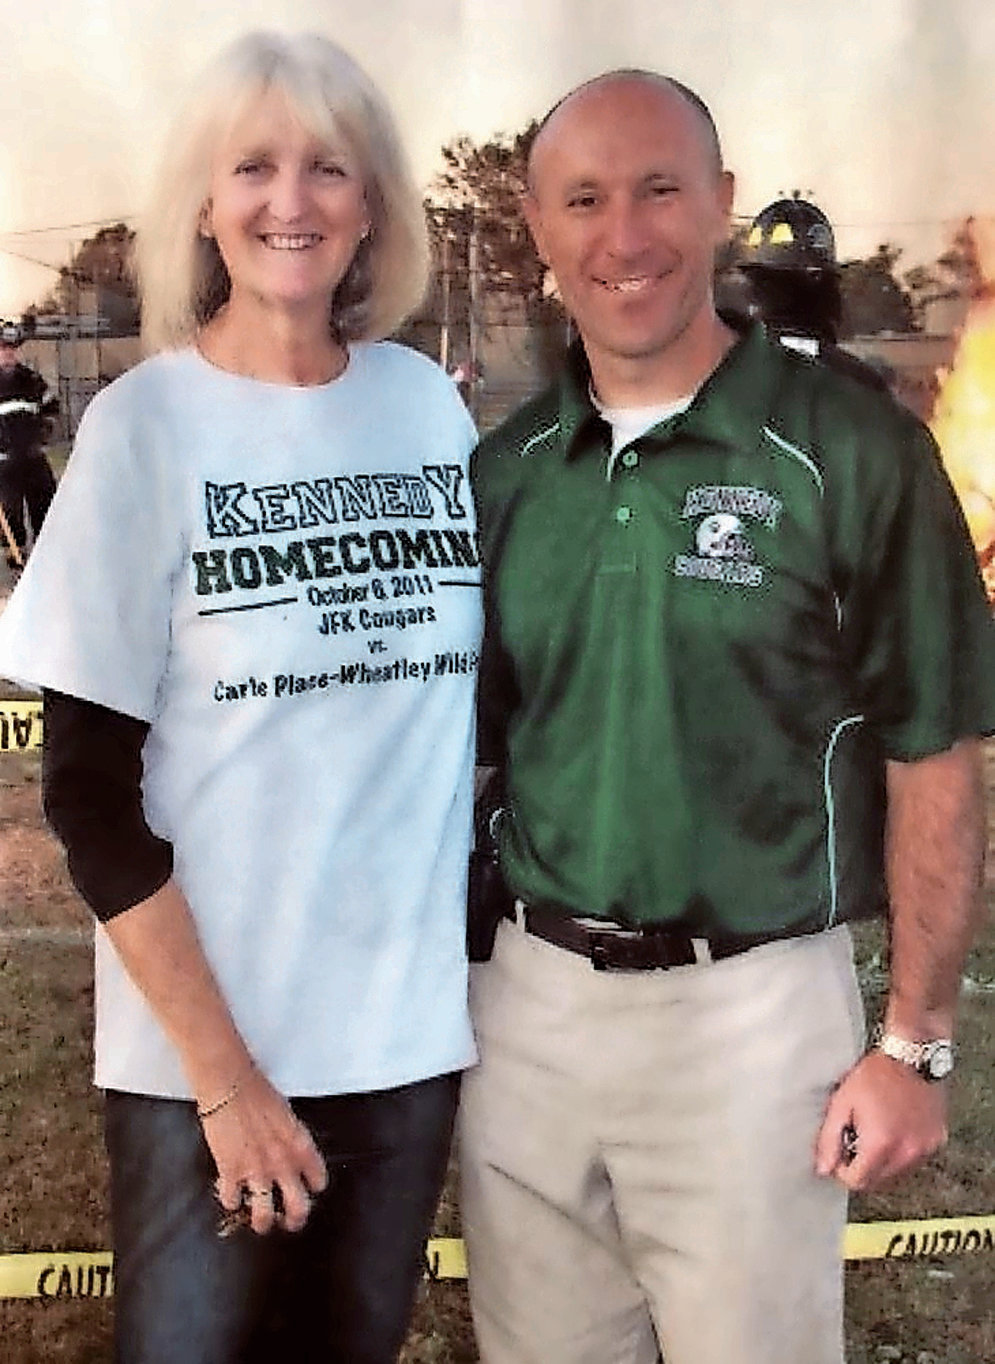 One of Current Principal Gerard Owenburg's favorite photos is of him and Poppe in front of the Kennedy fire pit at a Homecoming.